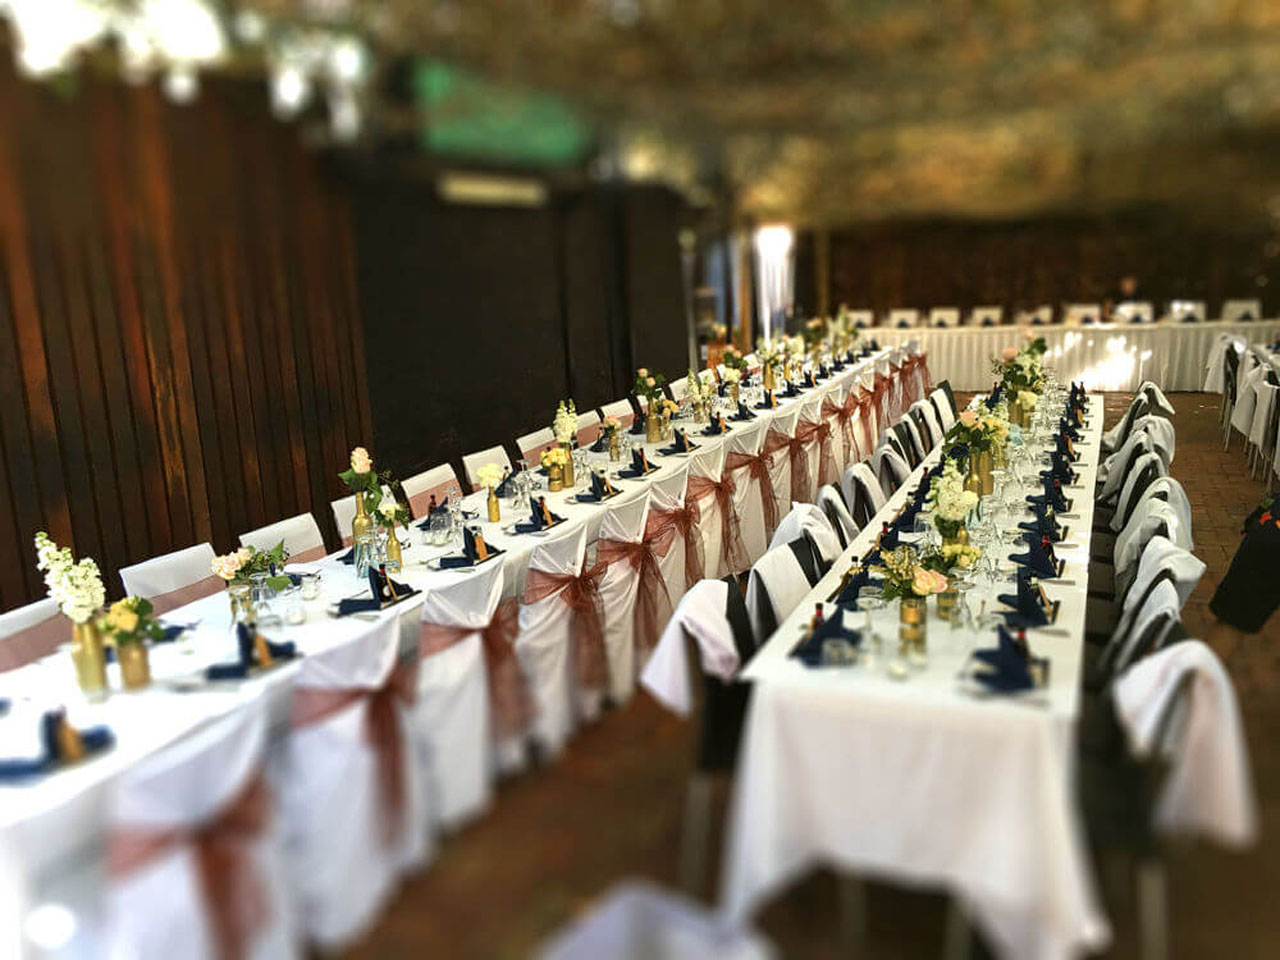 Long Tables Fully Set With Cutlery and Green Napkins In The Open Air Function Space